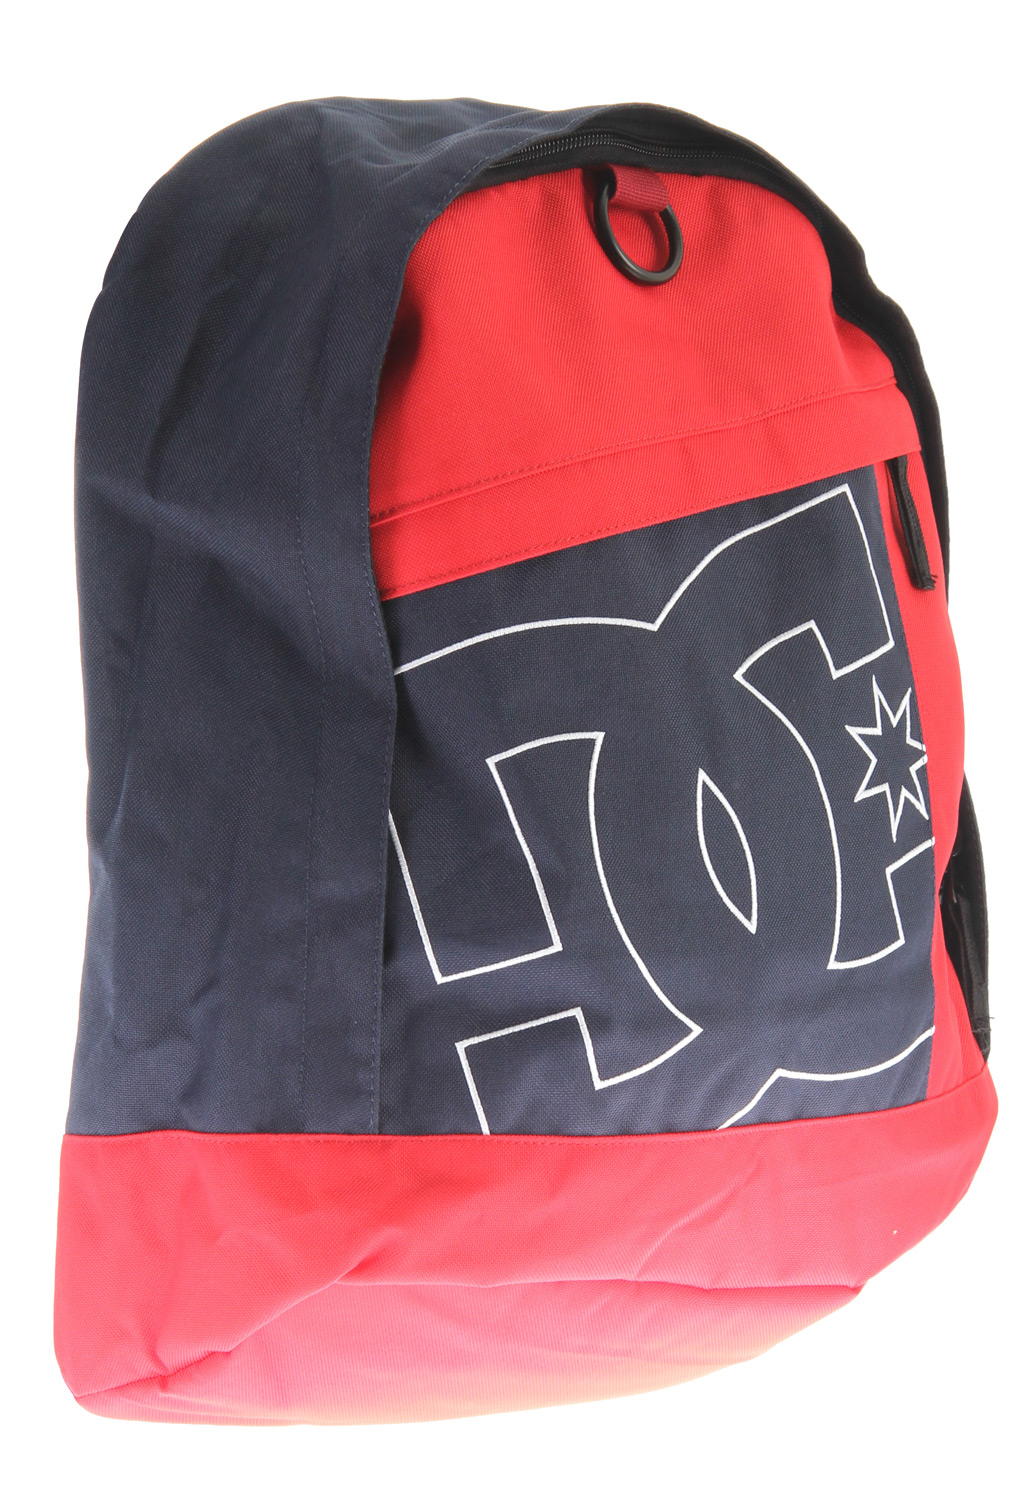 Key Features of the DC Slider Backpack: School backpack Asymmetrical front paneling detail Vertical zippered slip pocket on front panel Large main compartment with elevated laptop sleeve Interior organizer Exterior 'O' ring detail Padded back panel with DC logo embroidery detail Padded shoulder straps with suede logo detail Large DC logo outline stitch on front panel - $25.95